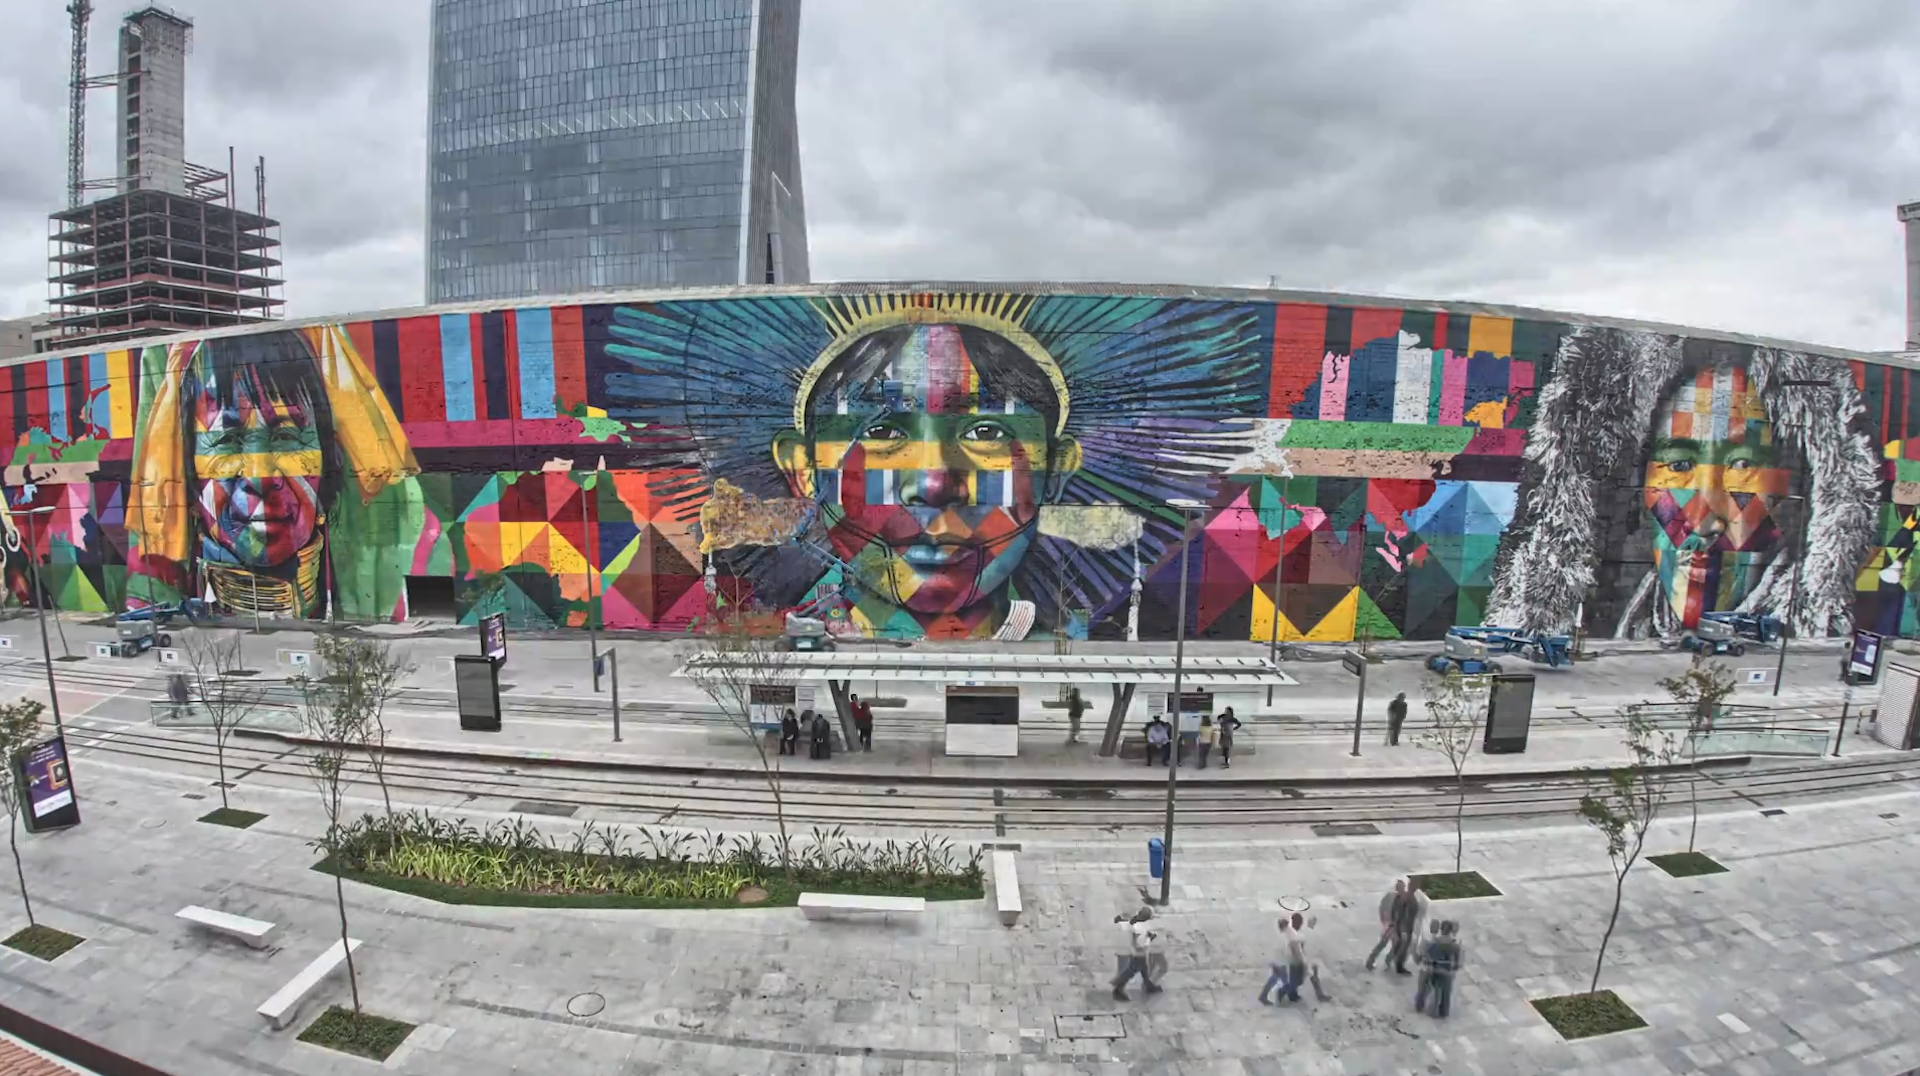 Watch timelapse shows huge street art mural in rio de janeiro the washington post